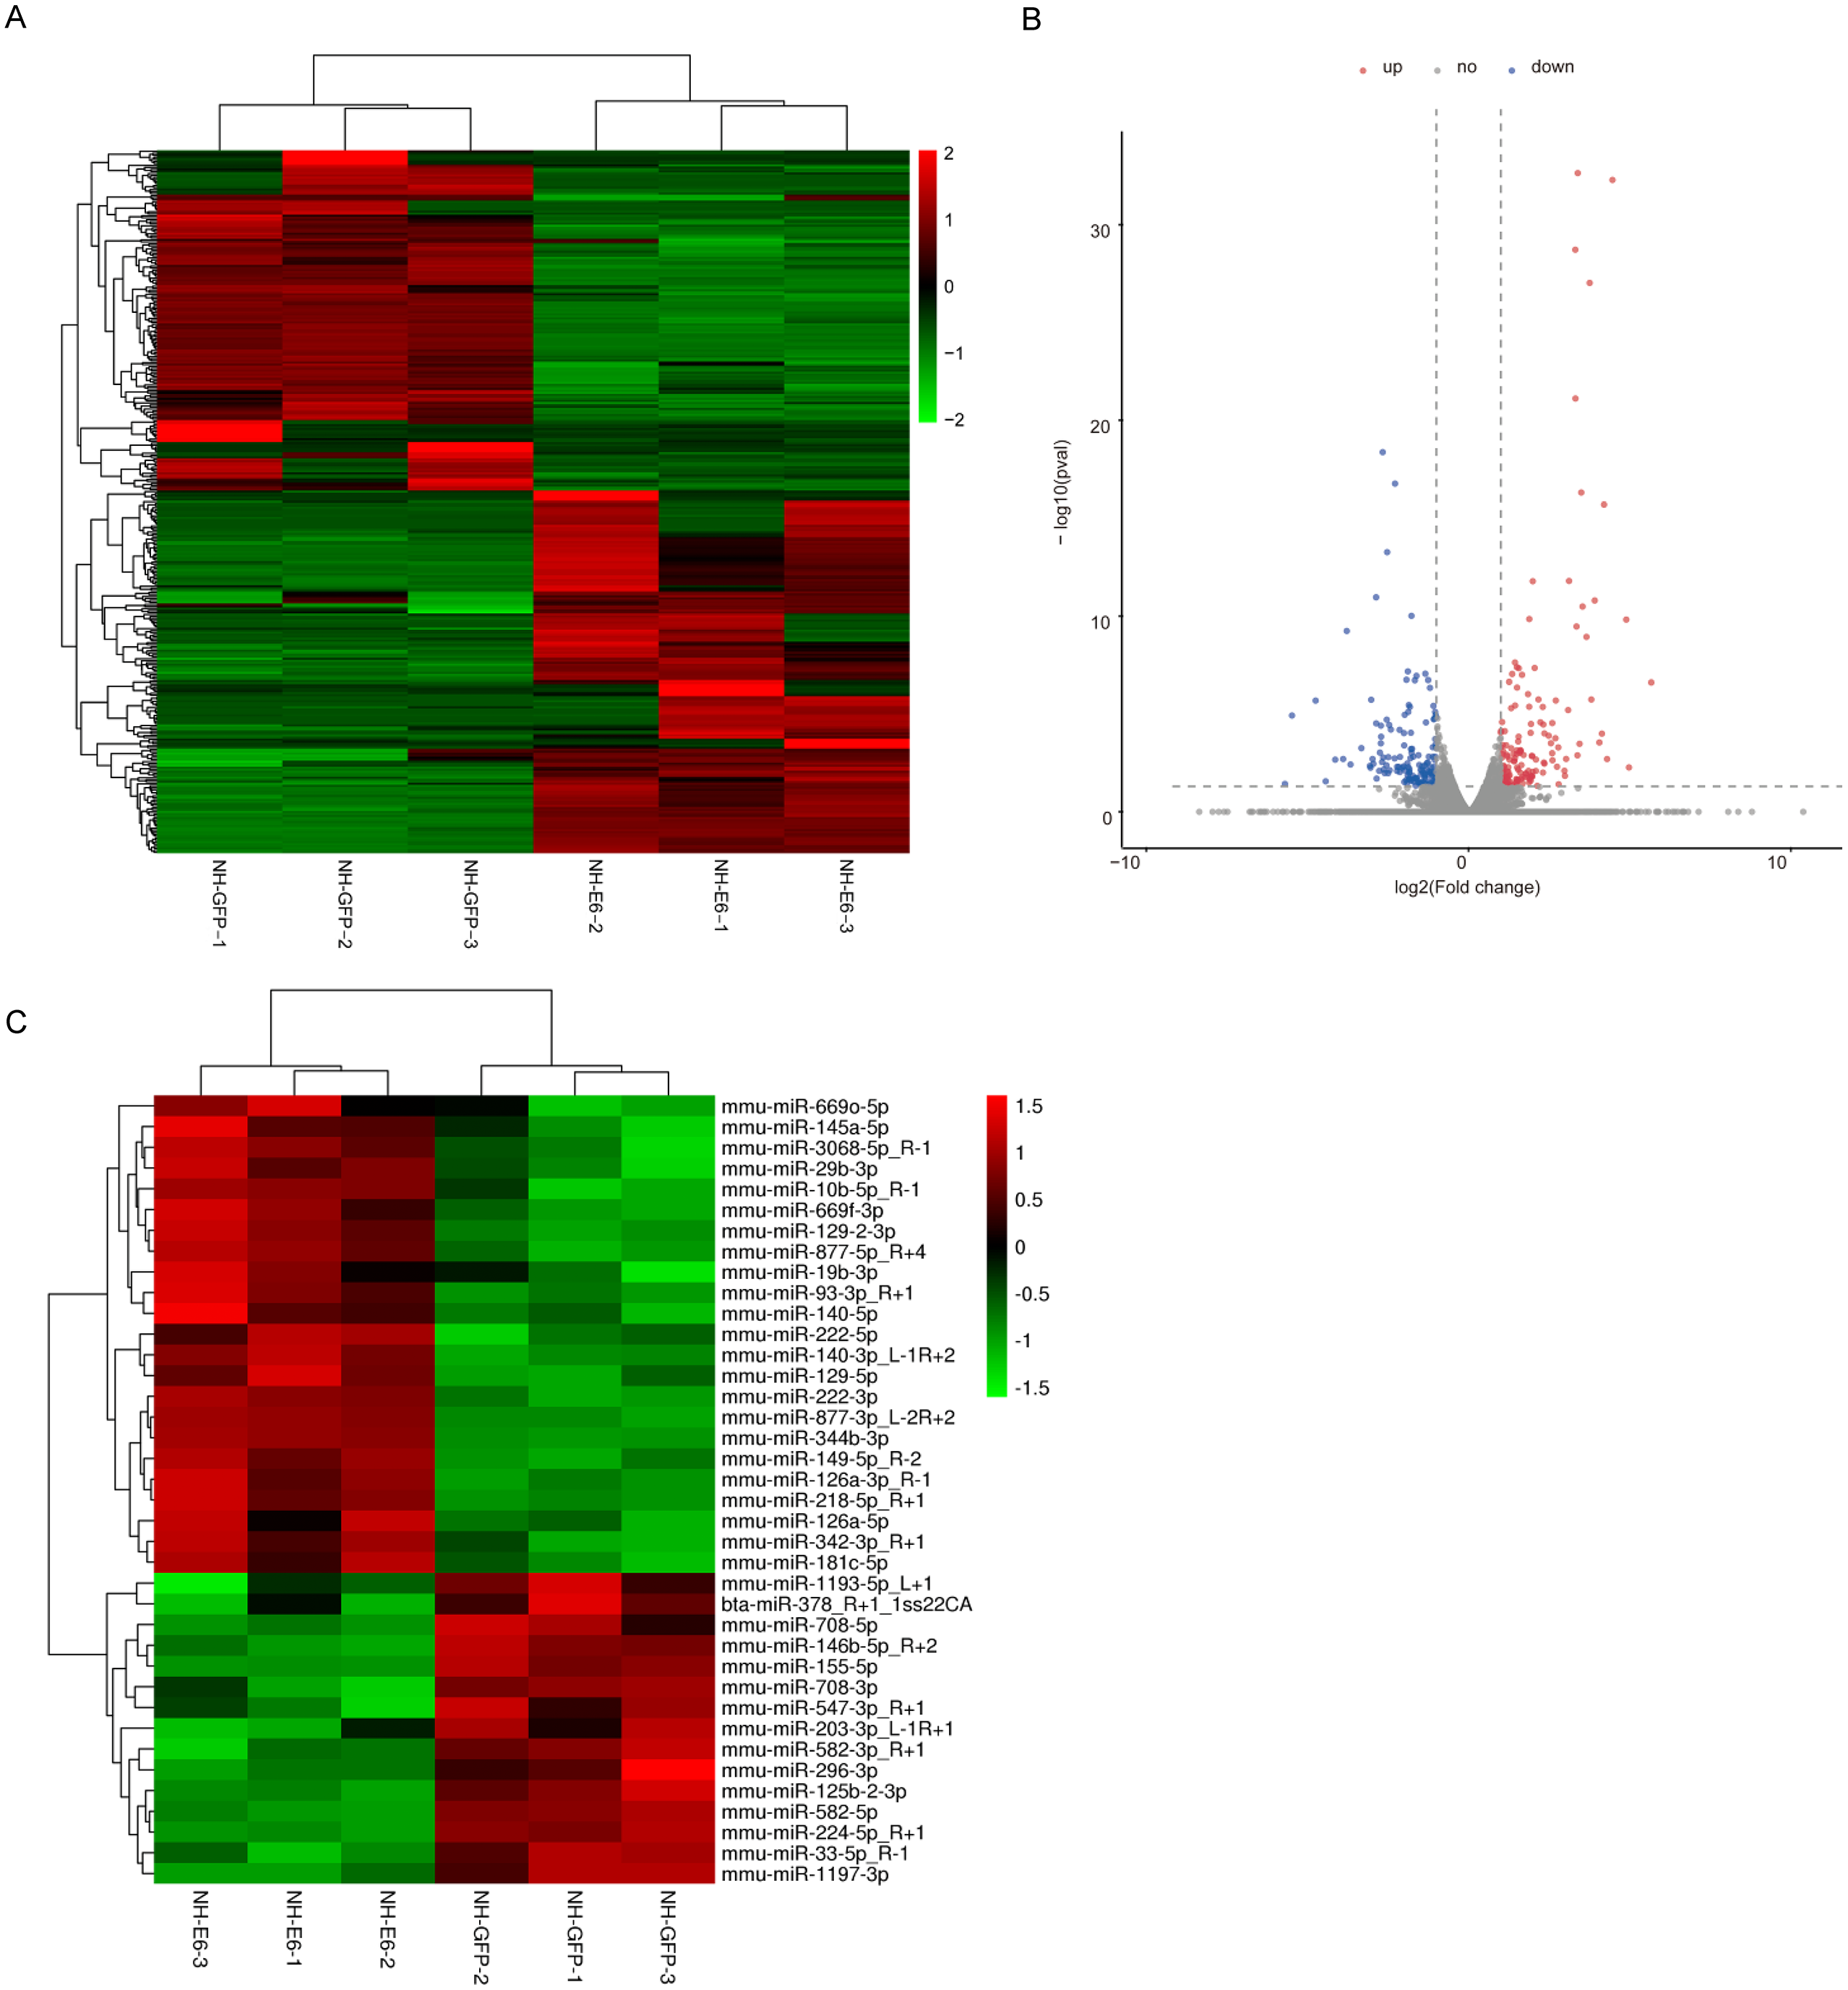 Integrated mRNA and miRNA profiling in NIH/3T3 cells in response to